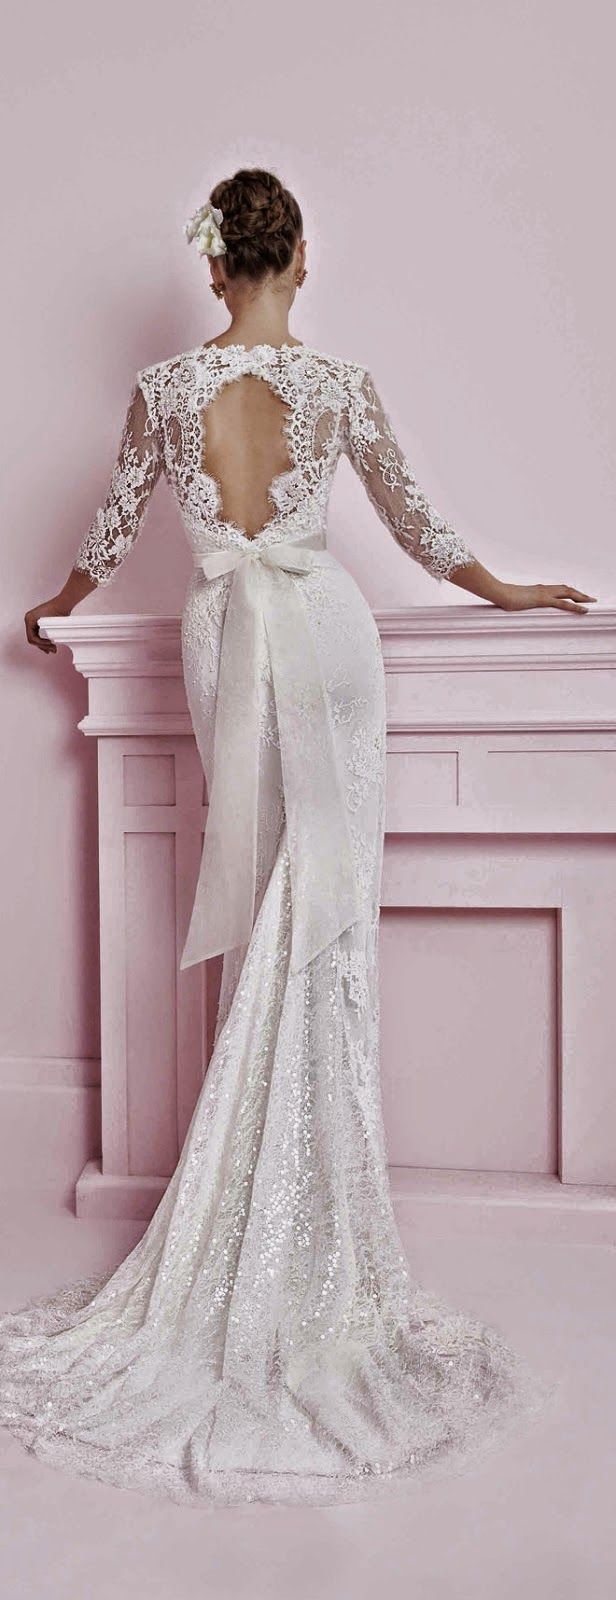 Winter Wedding Dresses - Sleeves are AMAZING for winter weddings